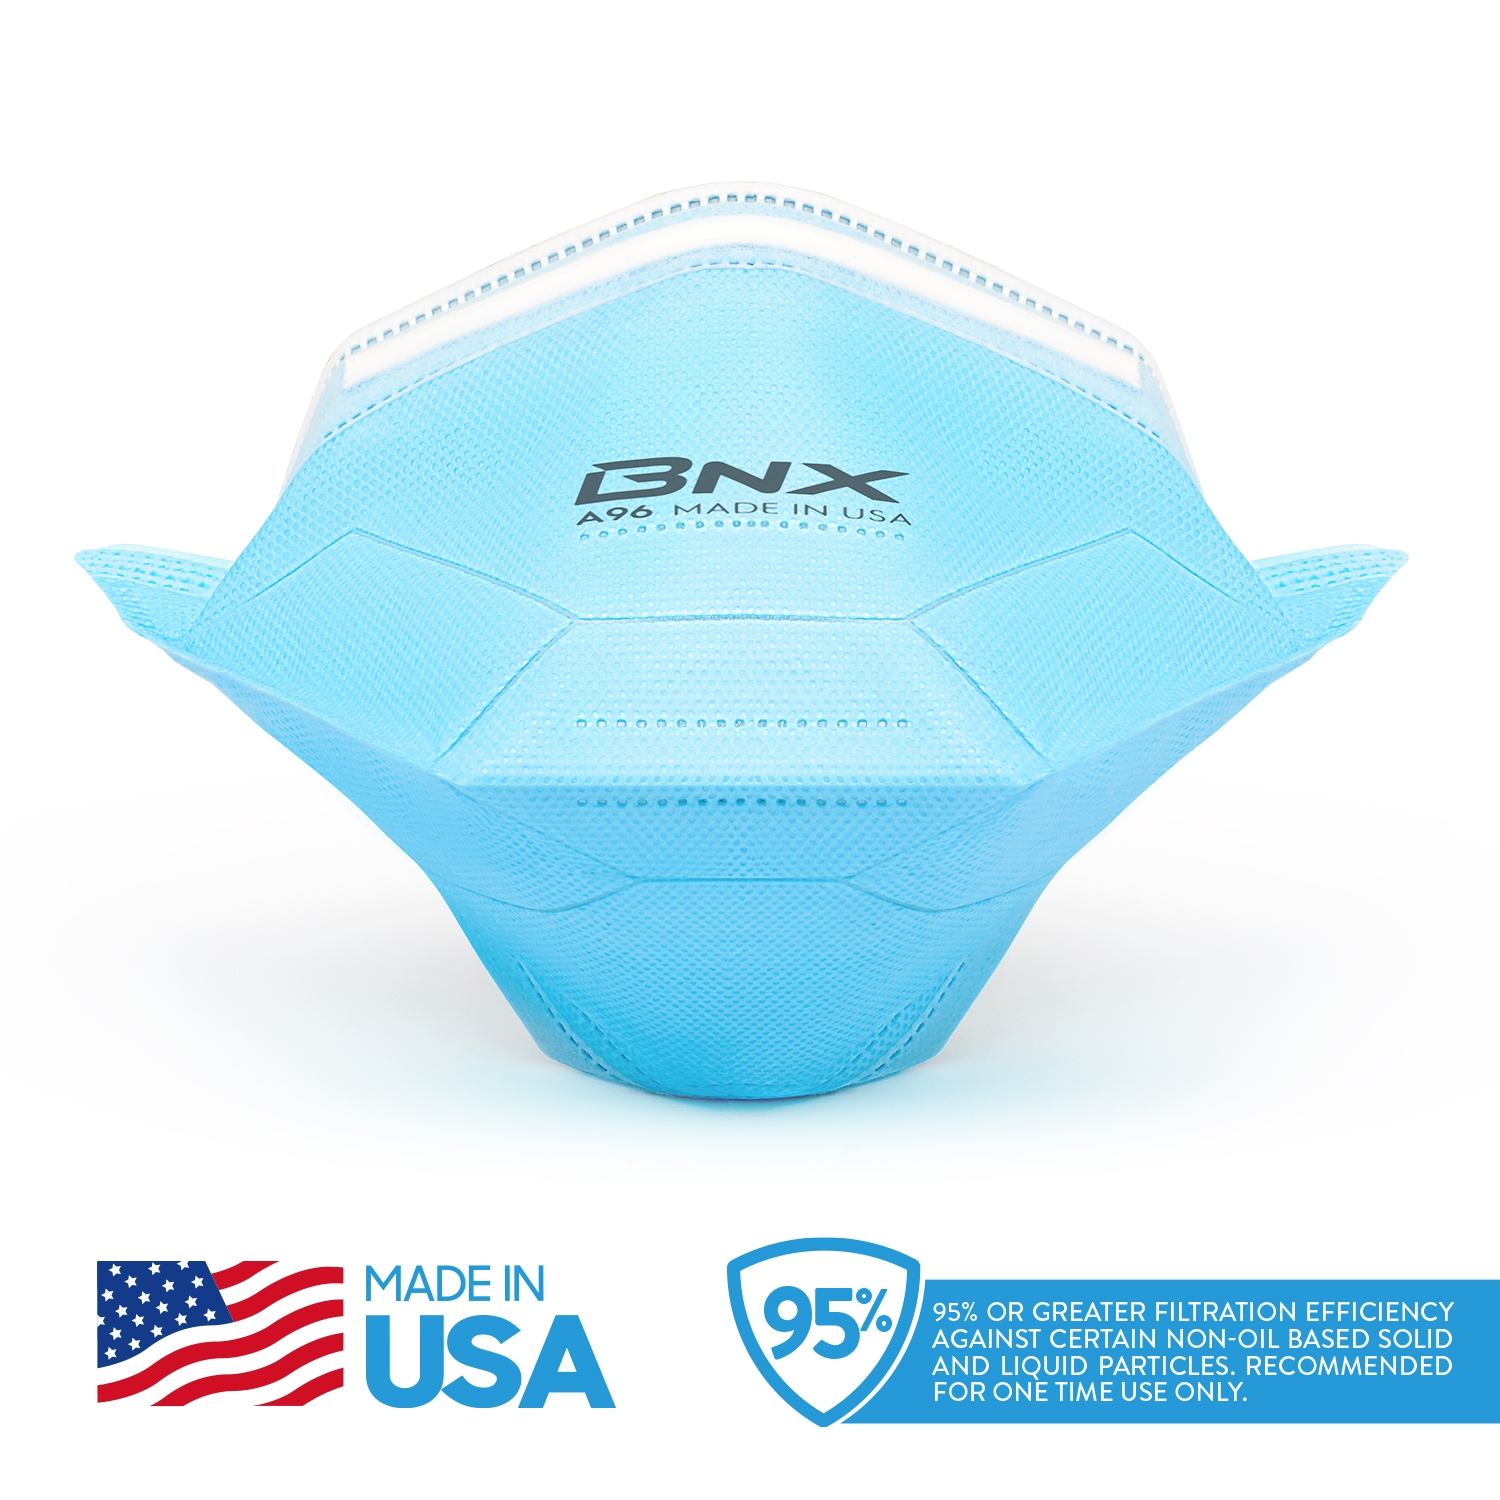 BNX 20-Pack KN95 Protective Face Mask MADE IN USA, FDA Registered, (Headband) (KN95 GB2626-2019), Model A96, Particulate Filtering Face Mask, Disposable Anti Dust Safety Face Mask (Medium)